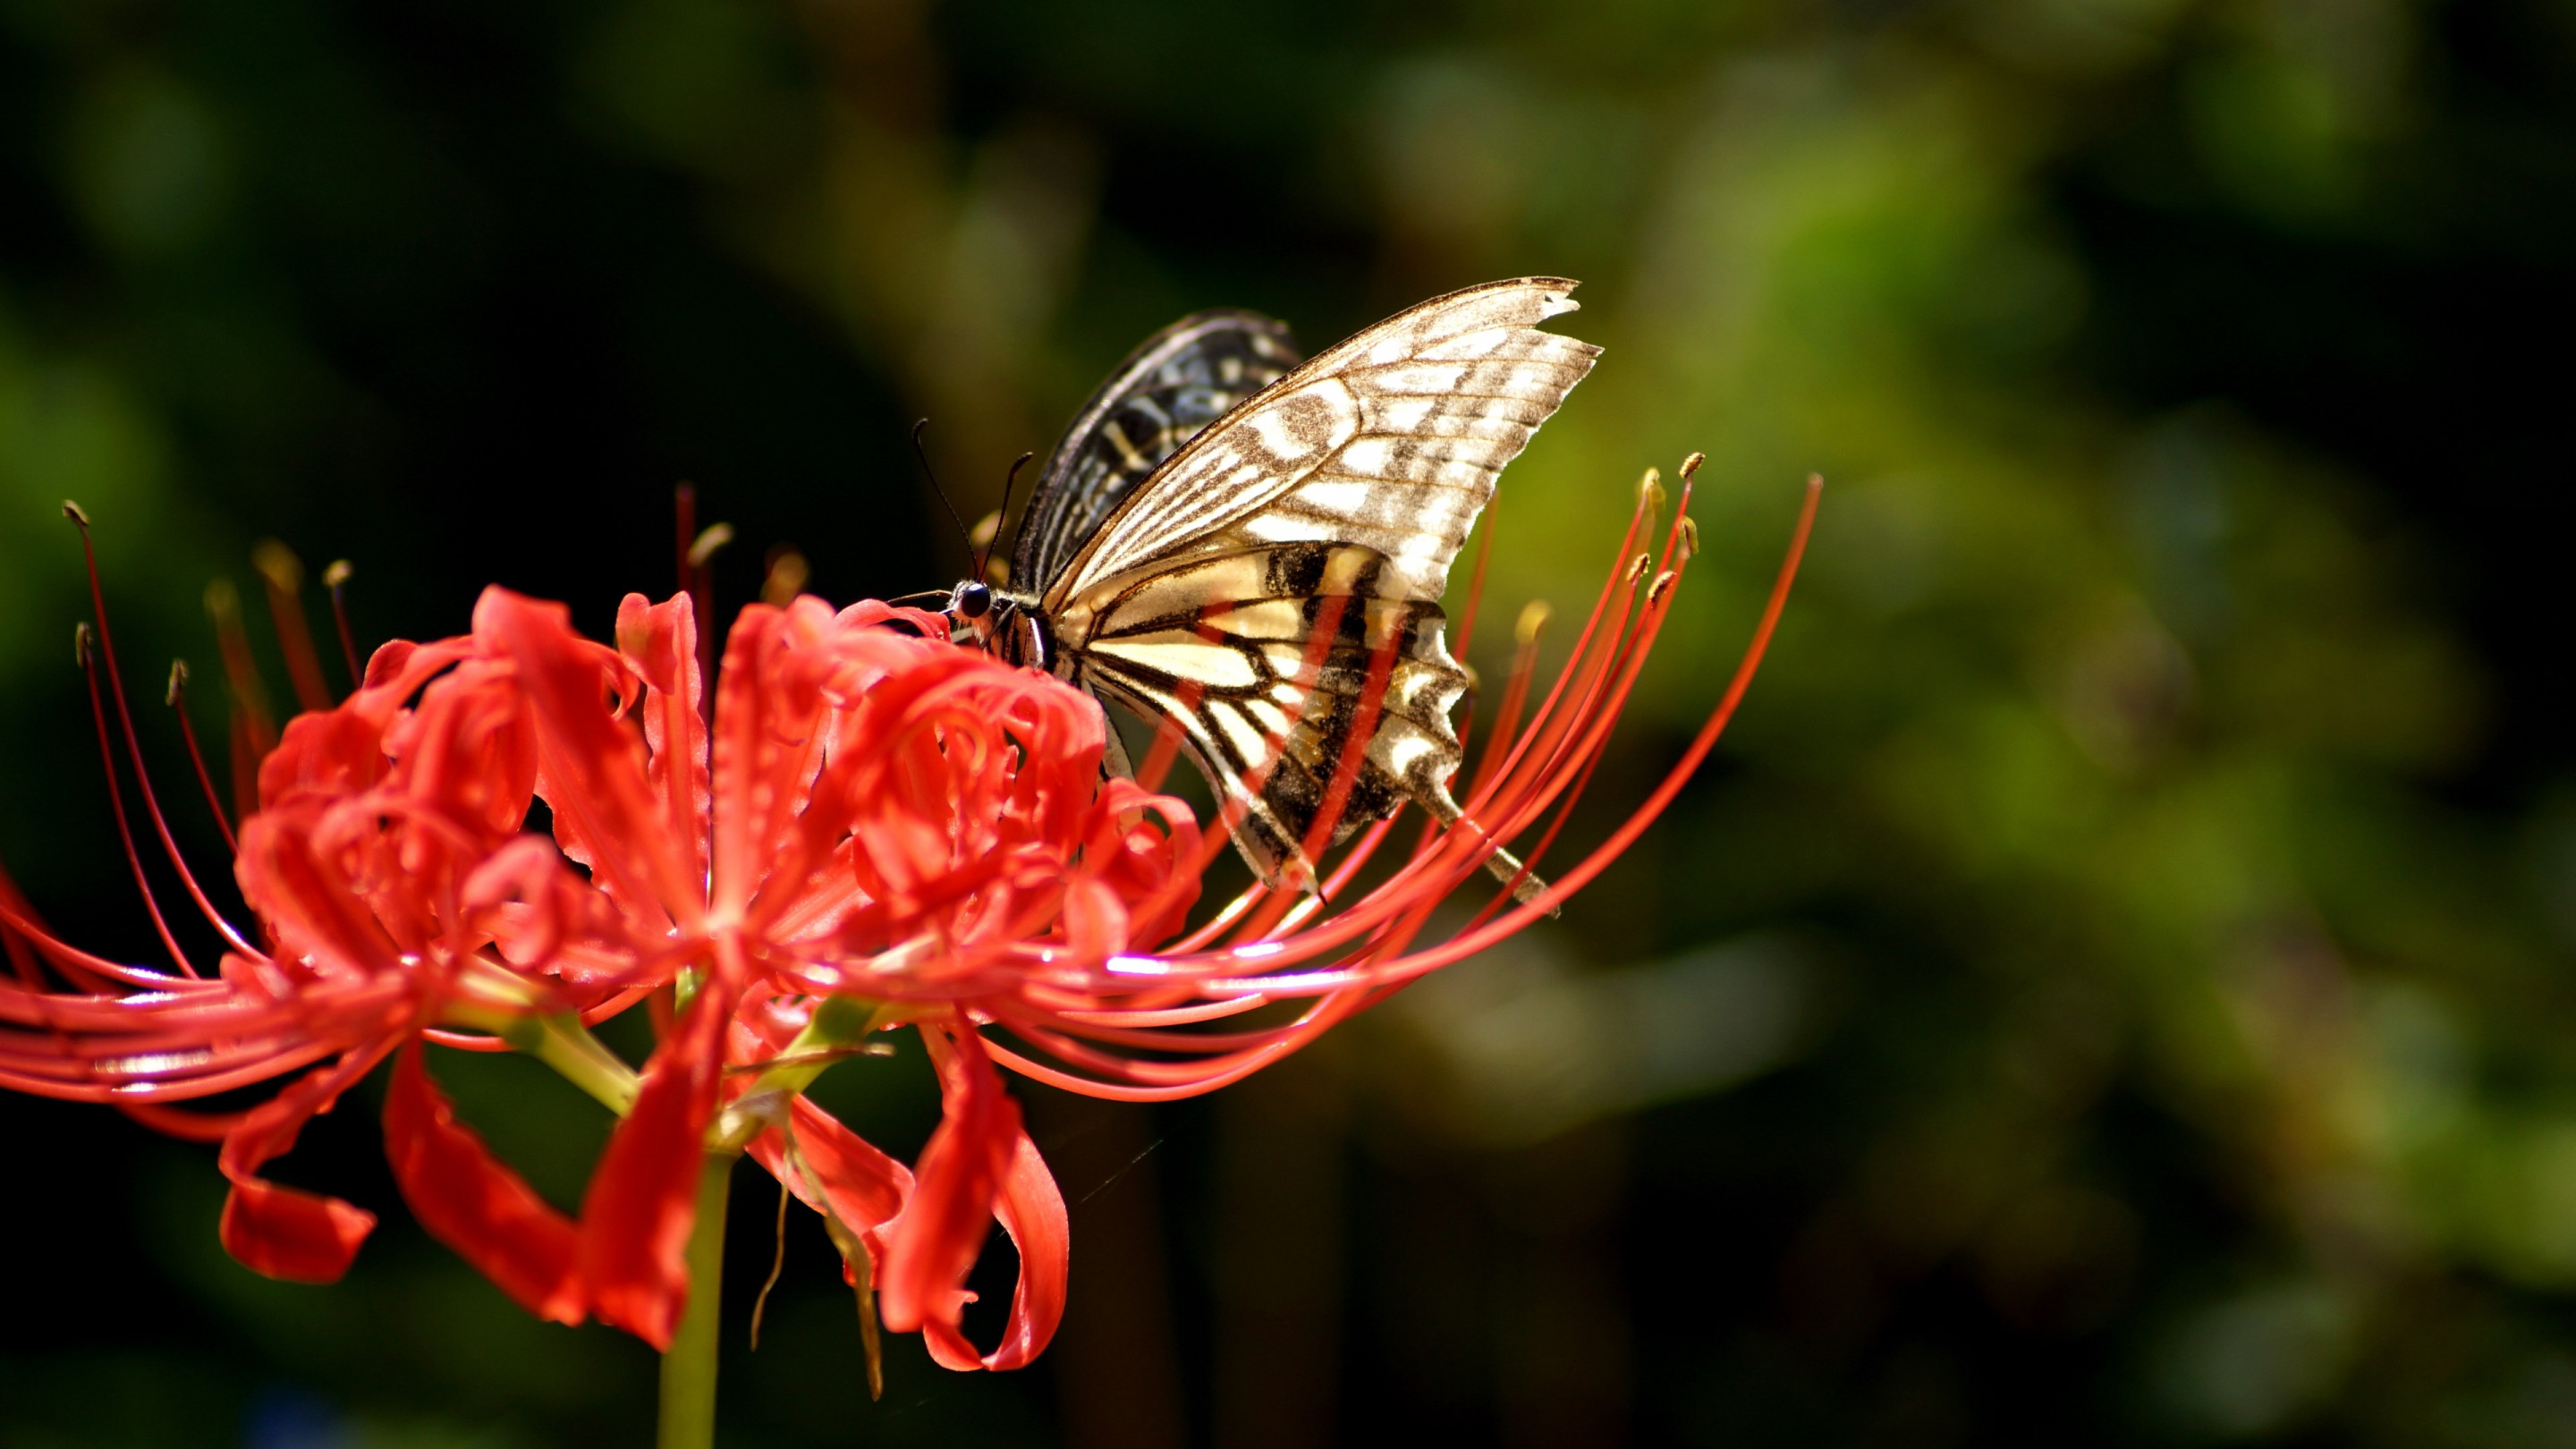 Butterfly on Lycoris Radiata flower wallpaper 2880x1620